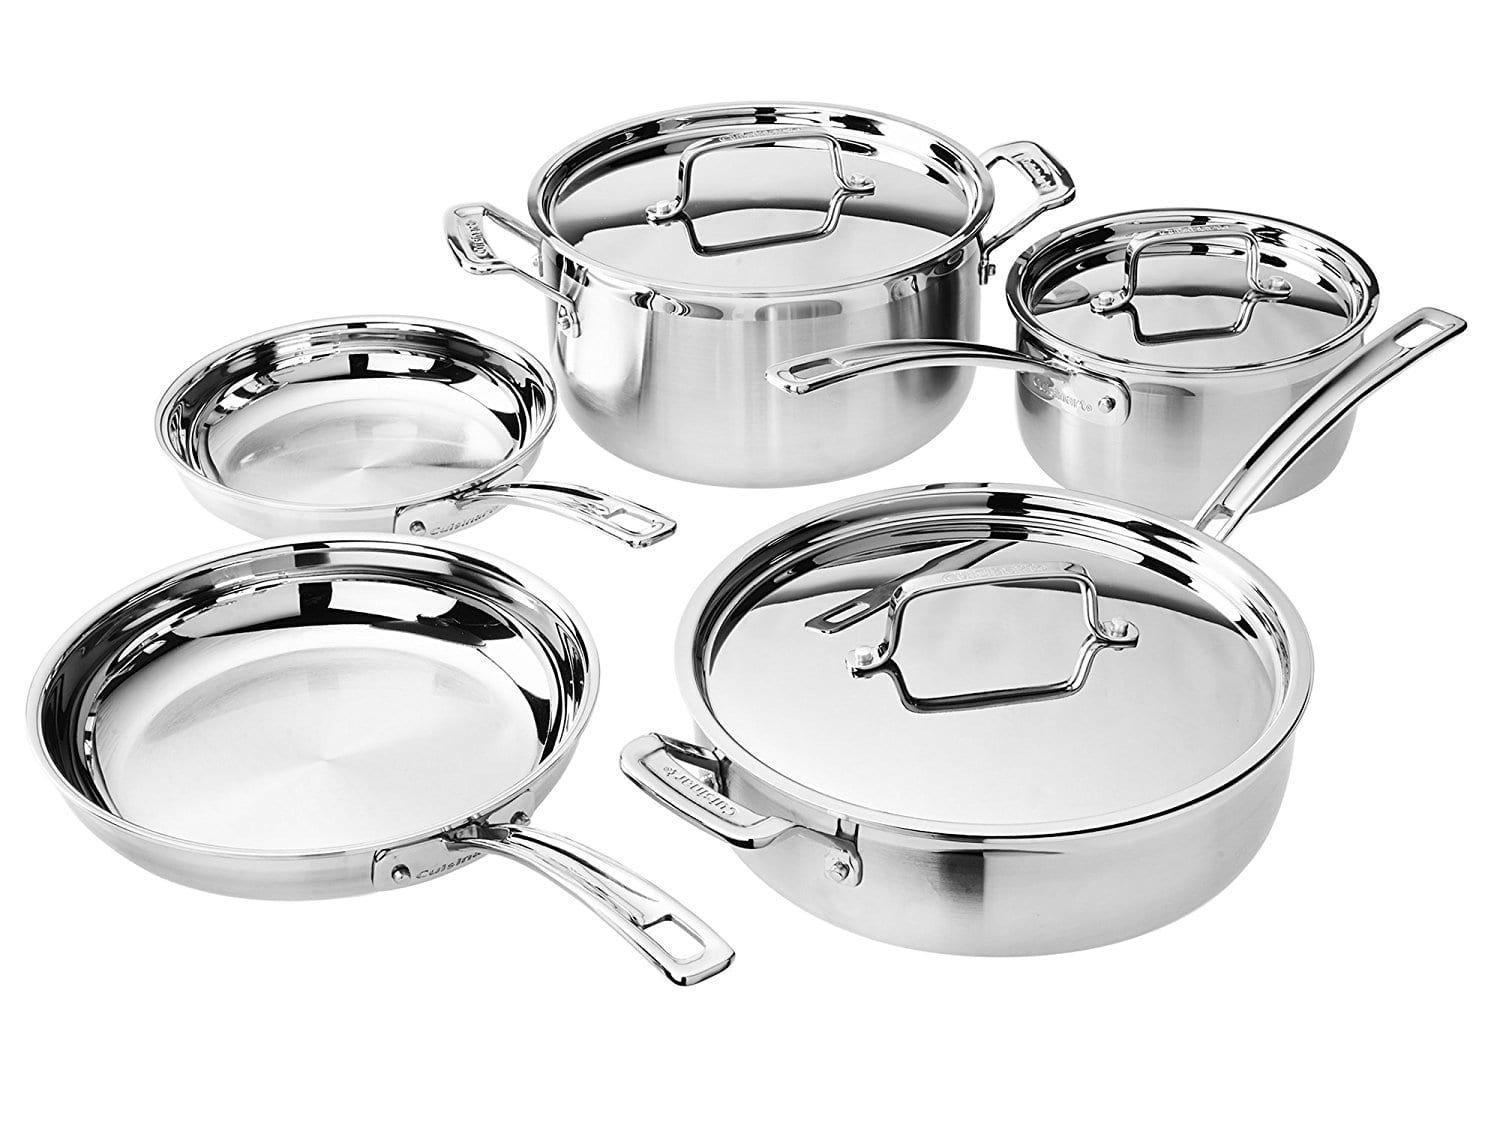 Cuisinart® MultiClad Pro Stainless Steel 8-Piece Cookware Set $139.99 FS